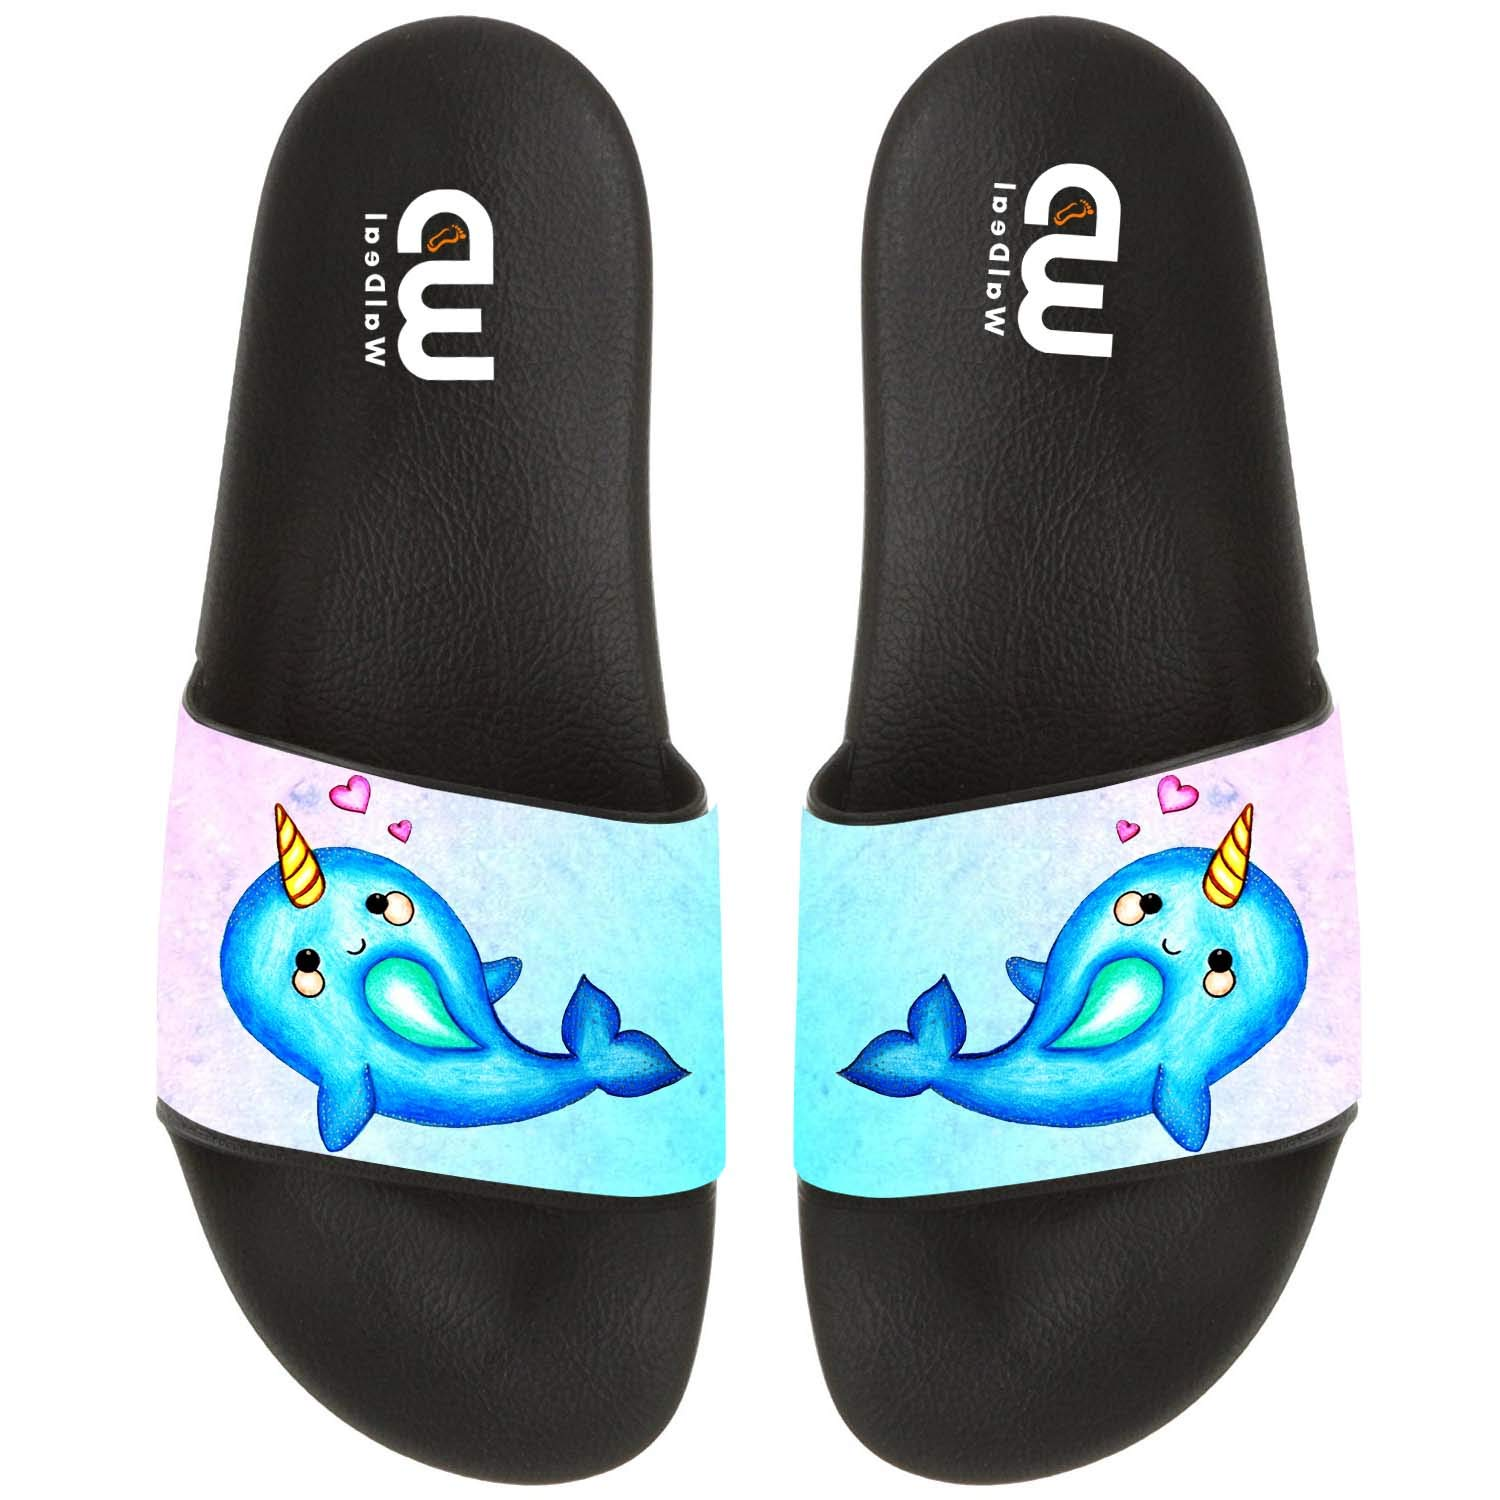 Narwhal Unicorn Heart Summer Slide Slippers For Girl Boy Kid Non-Slip House Sandal Shoes size 2